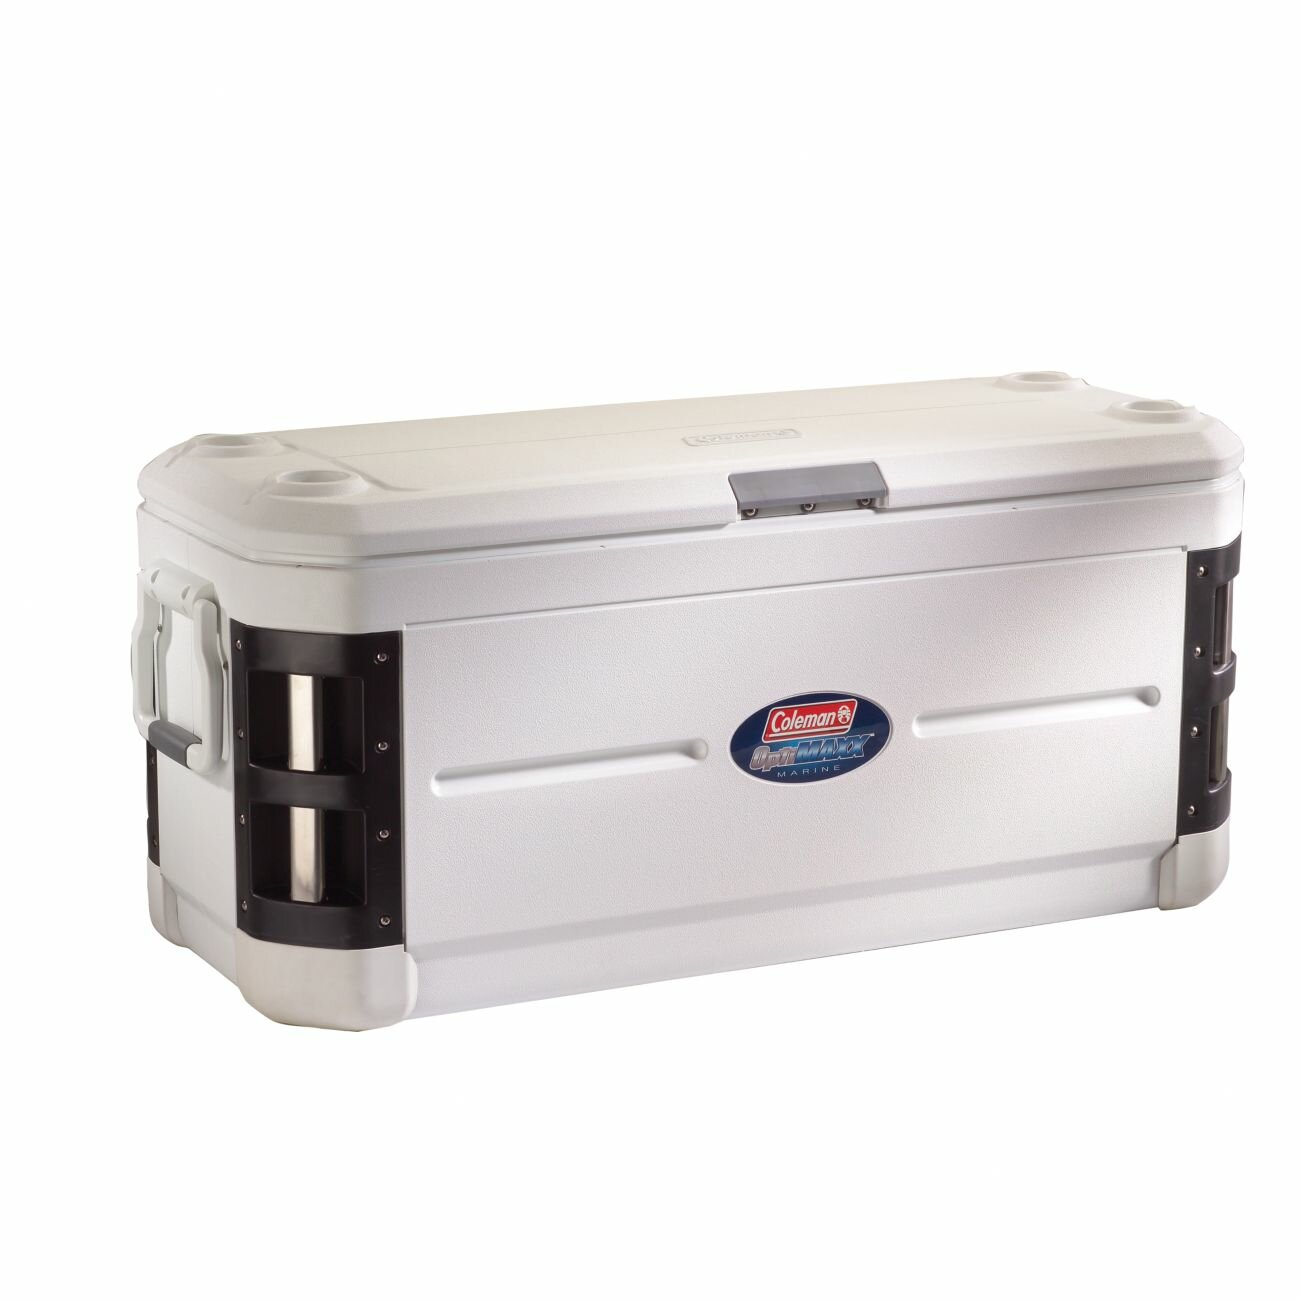 Heavy Duty Coolers : Coleman can xp h marine heavy duty cooler reviews